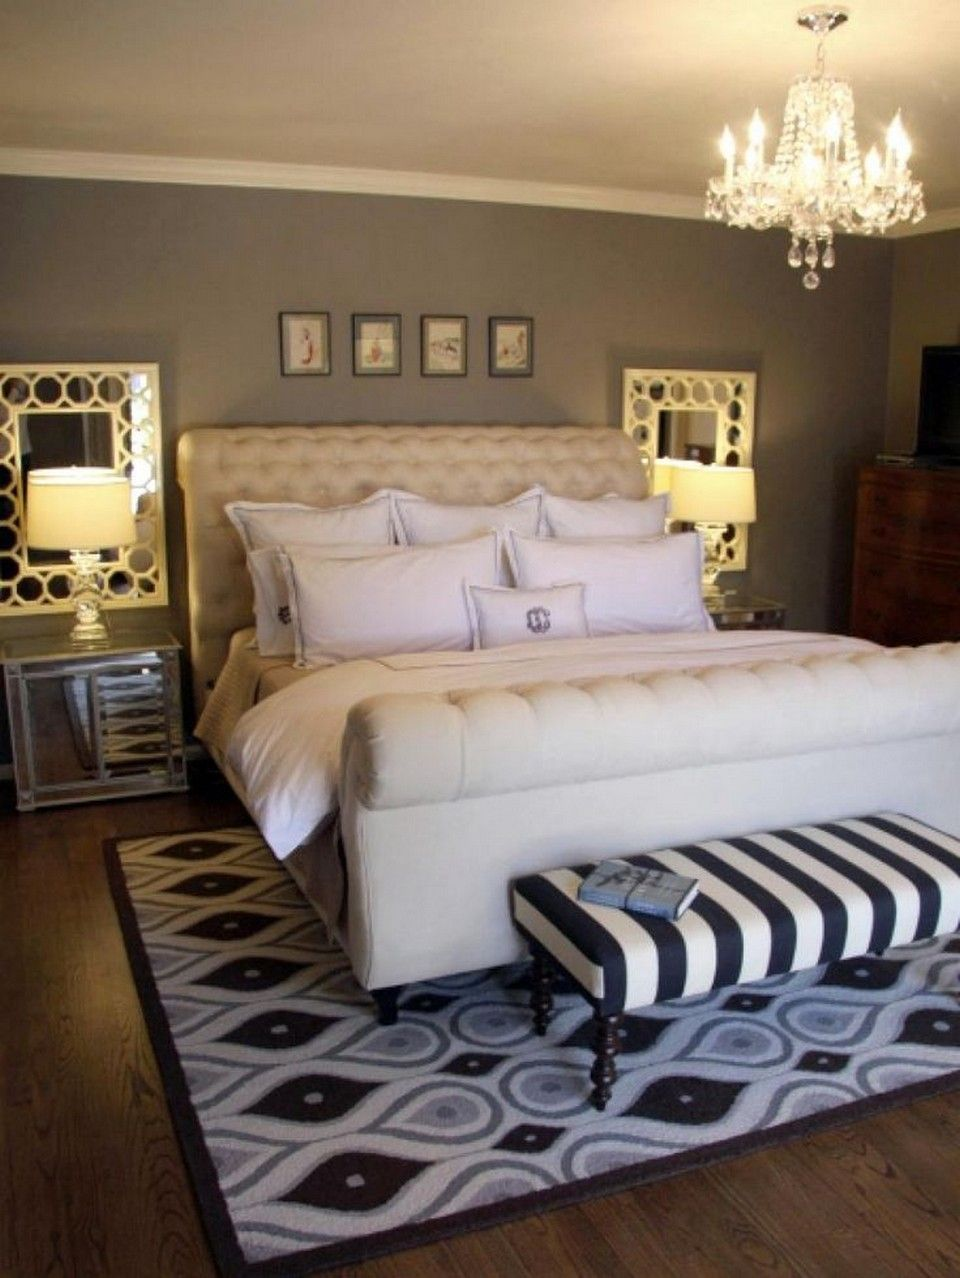 95 Brilliant Romantic Bedroom Design Ideas On A Budget Home